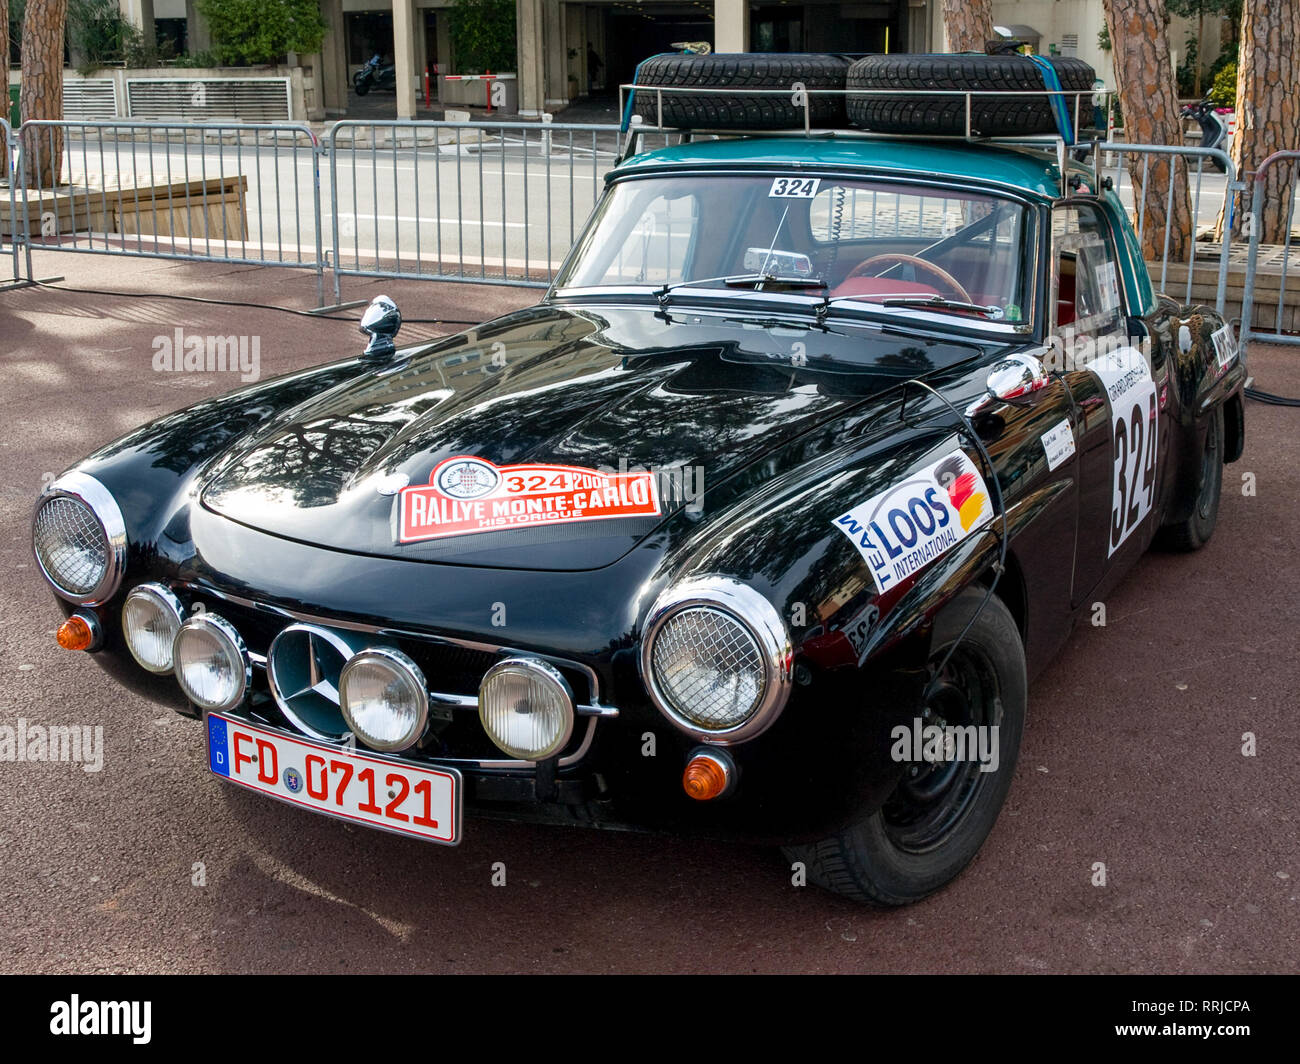 A classic Mercedes-Benz 450 SL rally car on display at the 2008 Monte Carlo Rally (76ème Rallye Automobile de Monte-Carlo) in Monte Carlo, Monaco. - Stock Image